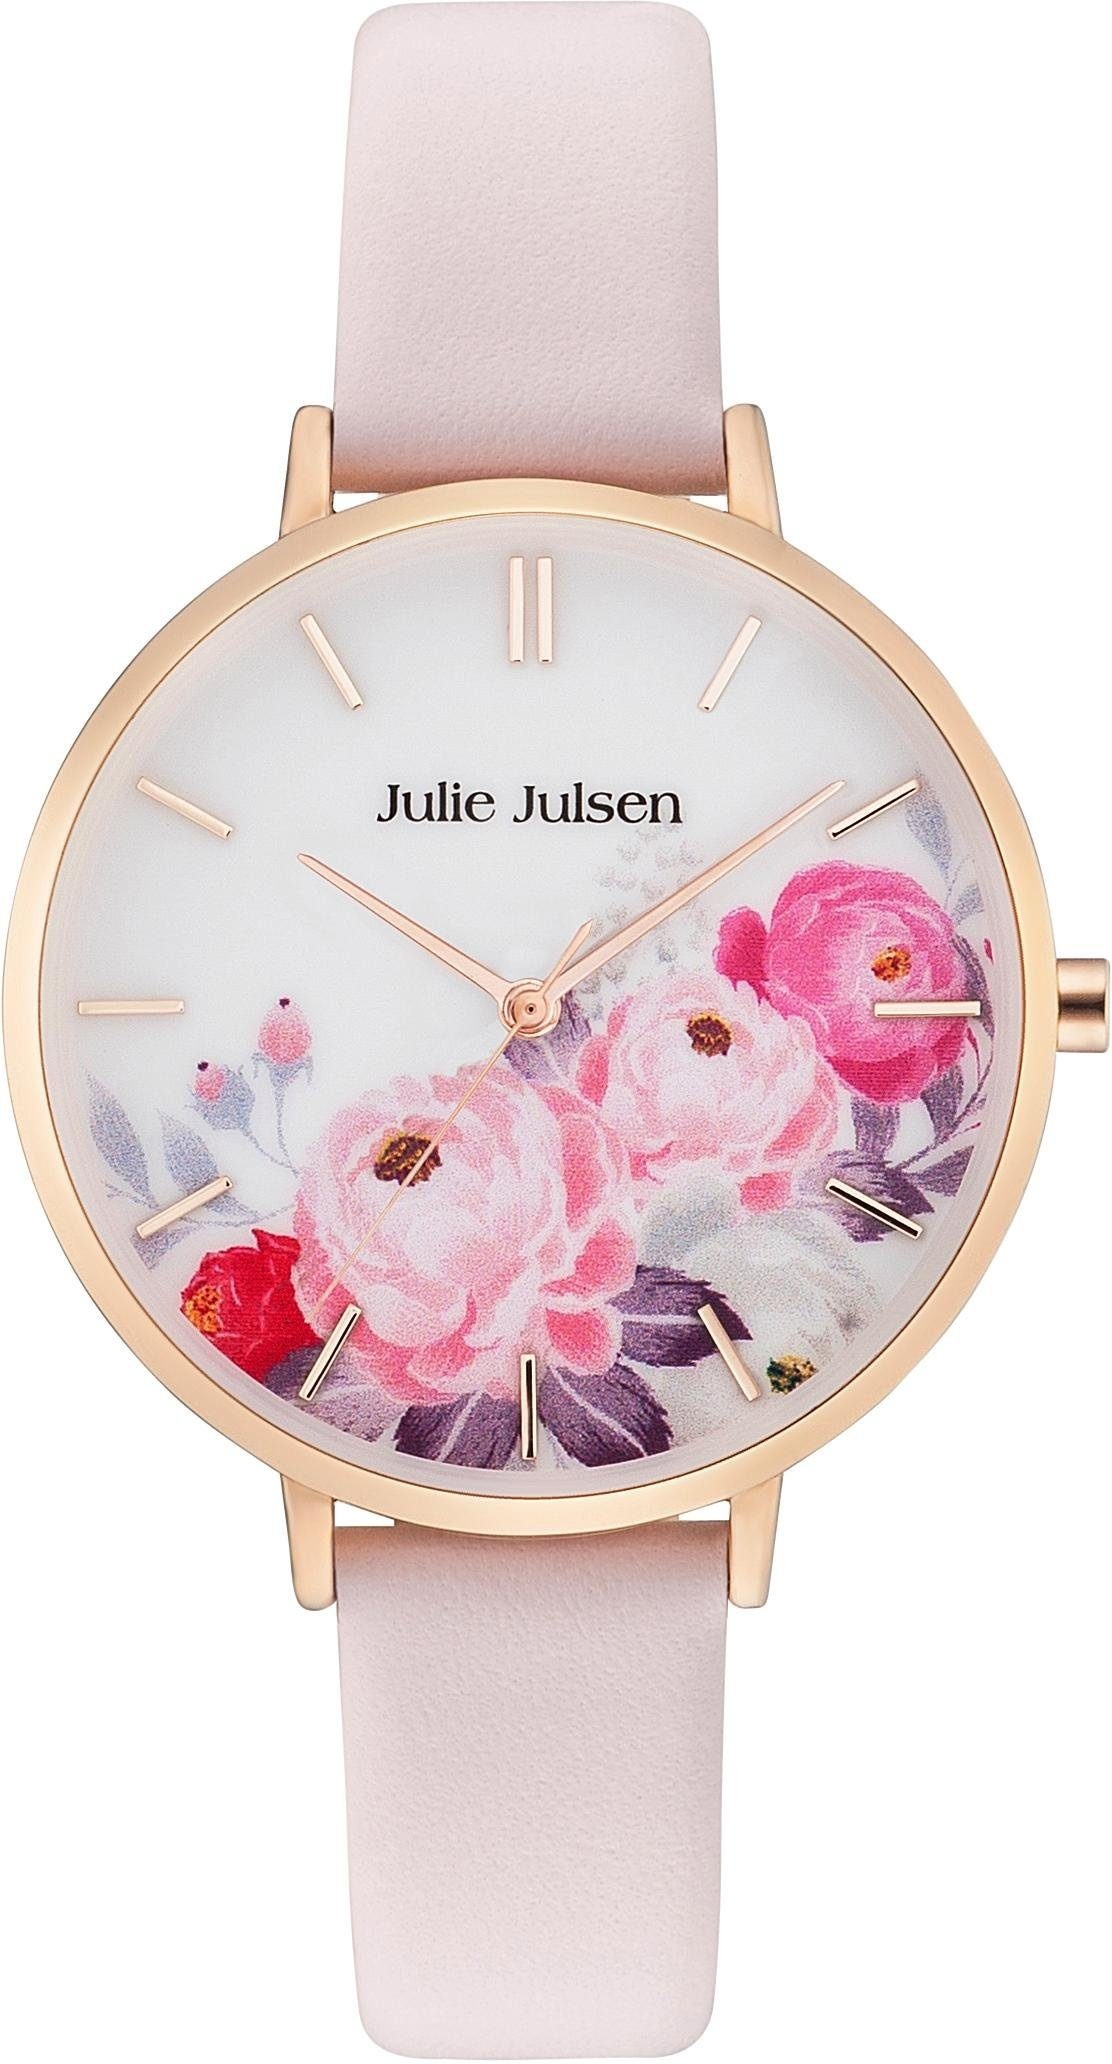 Julie Julsen Quarzuhr »Flower Rosé Light Pink, JJW11RGL-2«